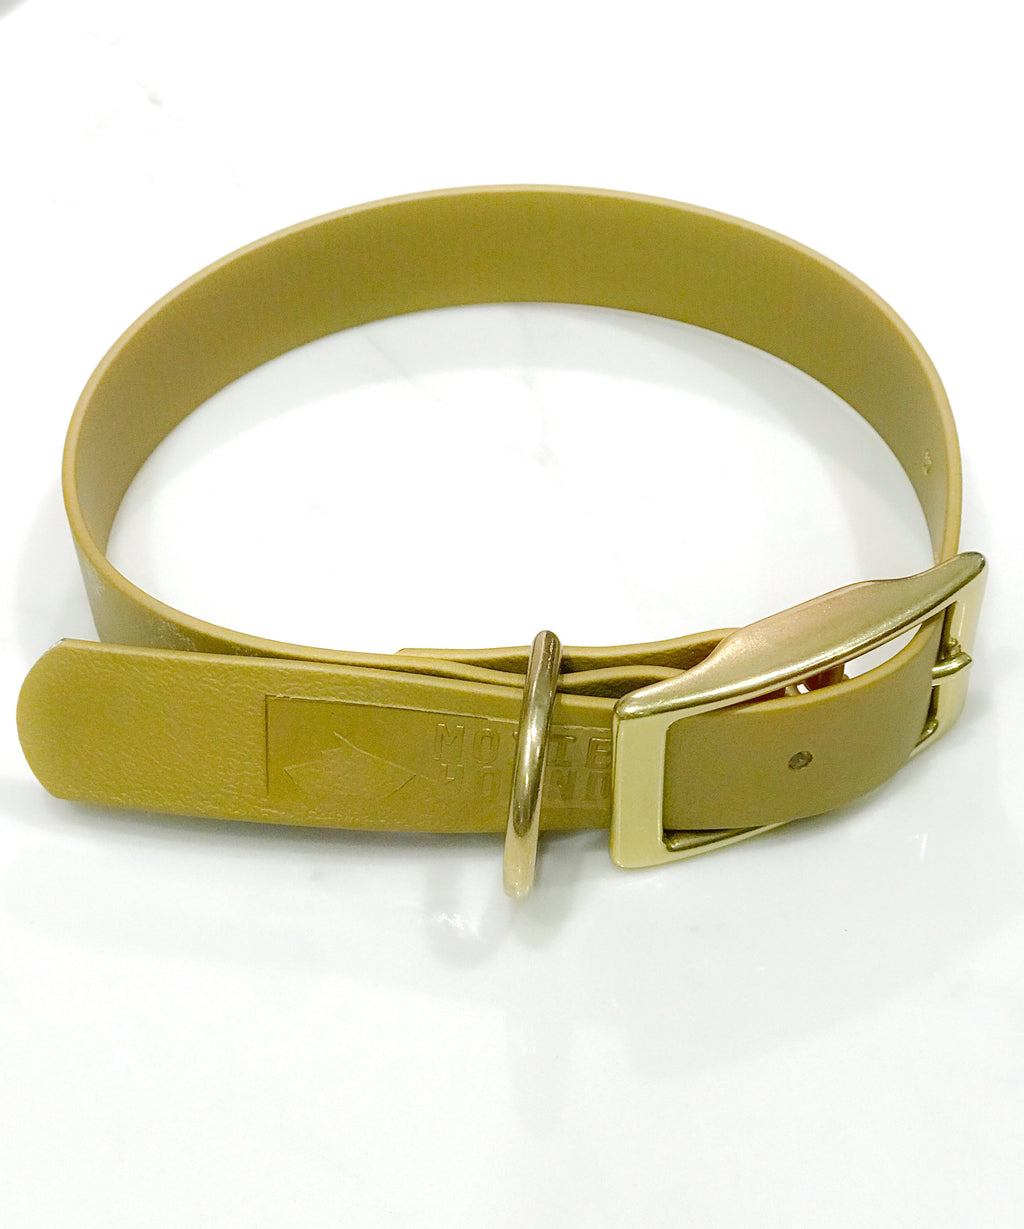 Intertidal Collection™ Gold 1 inch Collar